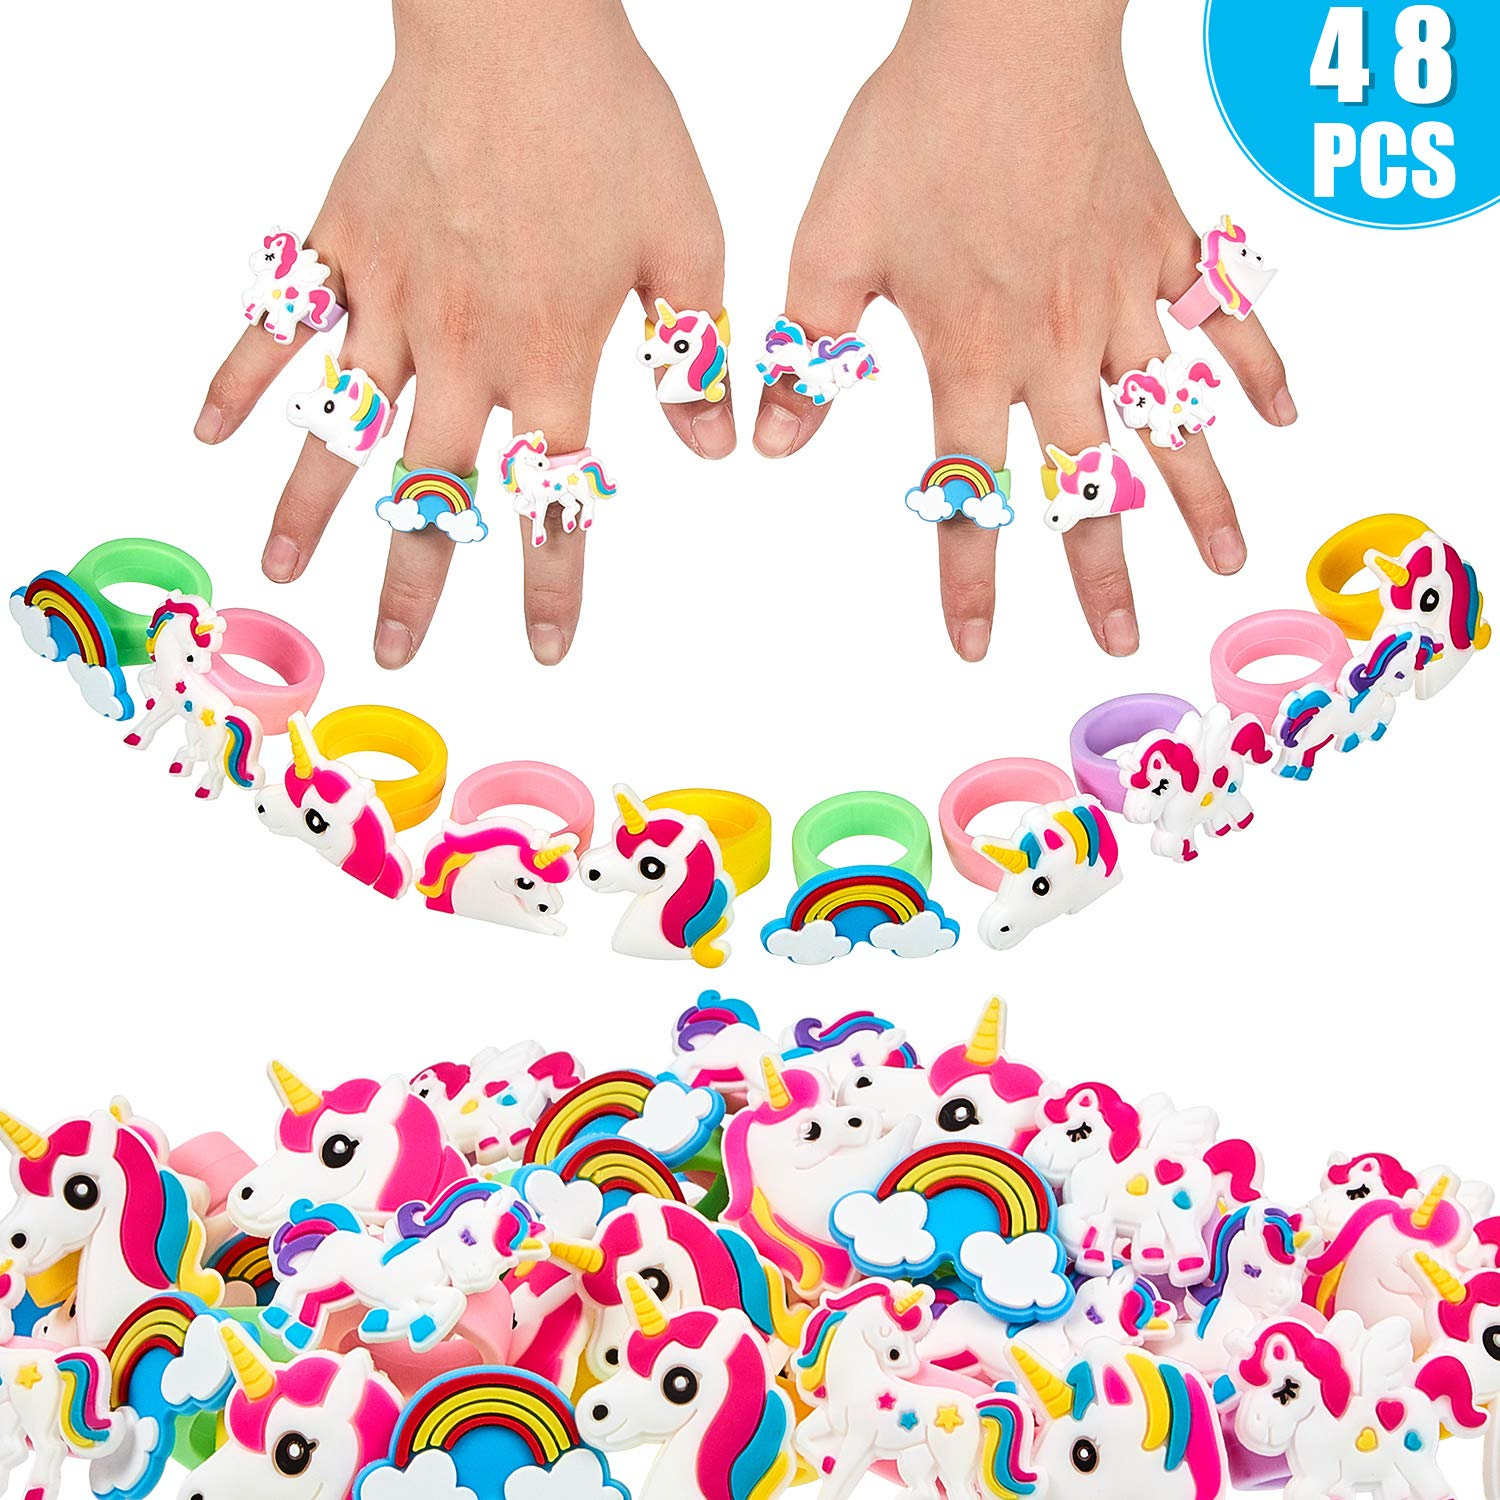 Gejoy 48 Pieces Unicorn Rings Rainbow Rings Multi-Color Rubber Unicorn Cupcake Rings for Unicorn Themed Party Favors by Gejoy